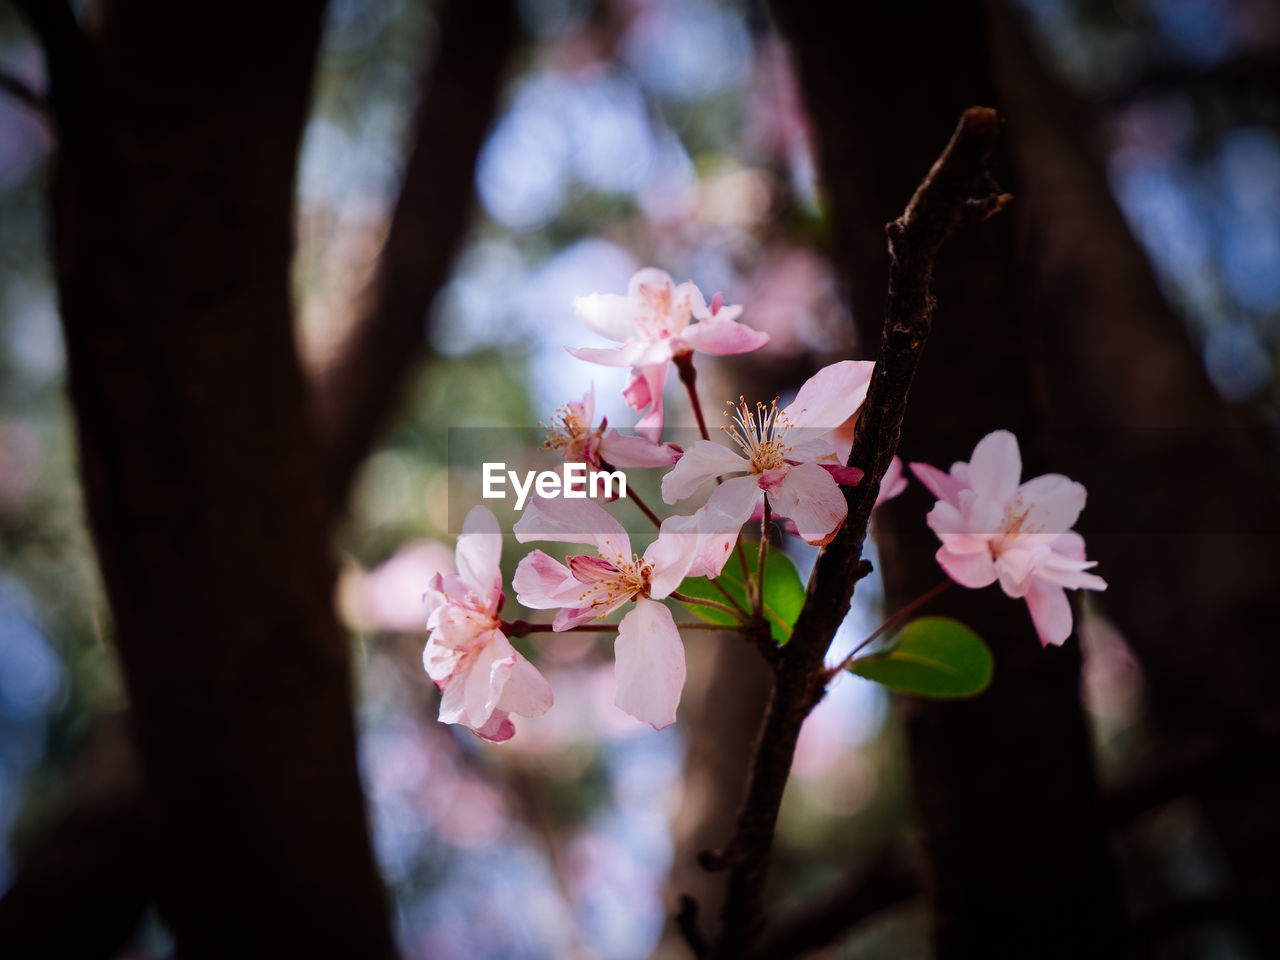 flower, flowering plant, plant, growth, beauty in nature, fragility, vulnerability, freshness, close-up, petal, tree, day, pink color, blossom, focus on foreground, nature, selective focus, springtime, no people, branch, outdoors, flower head, pollen, cherry blossom, cherry tree